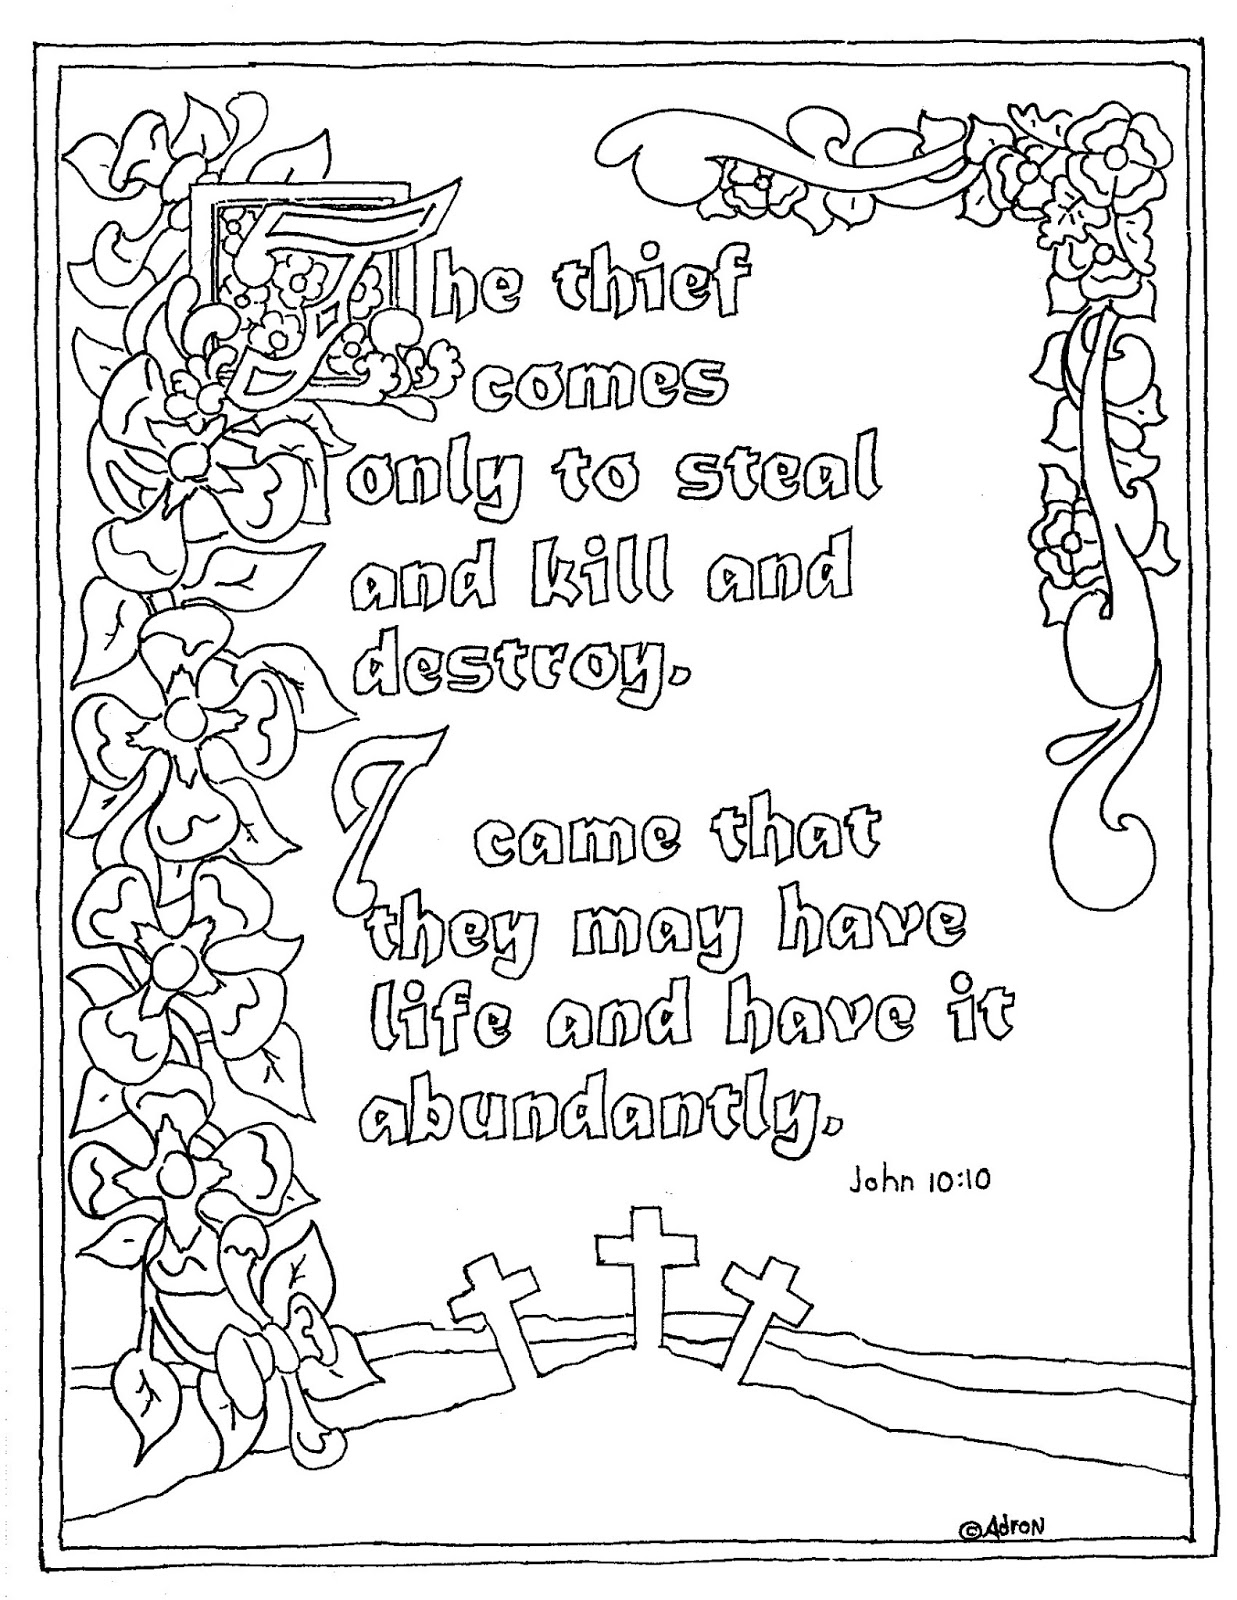 Coloring pages for john 9 - Printable John 10 10 Coloring Page In Illuminated Text Style